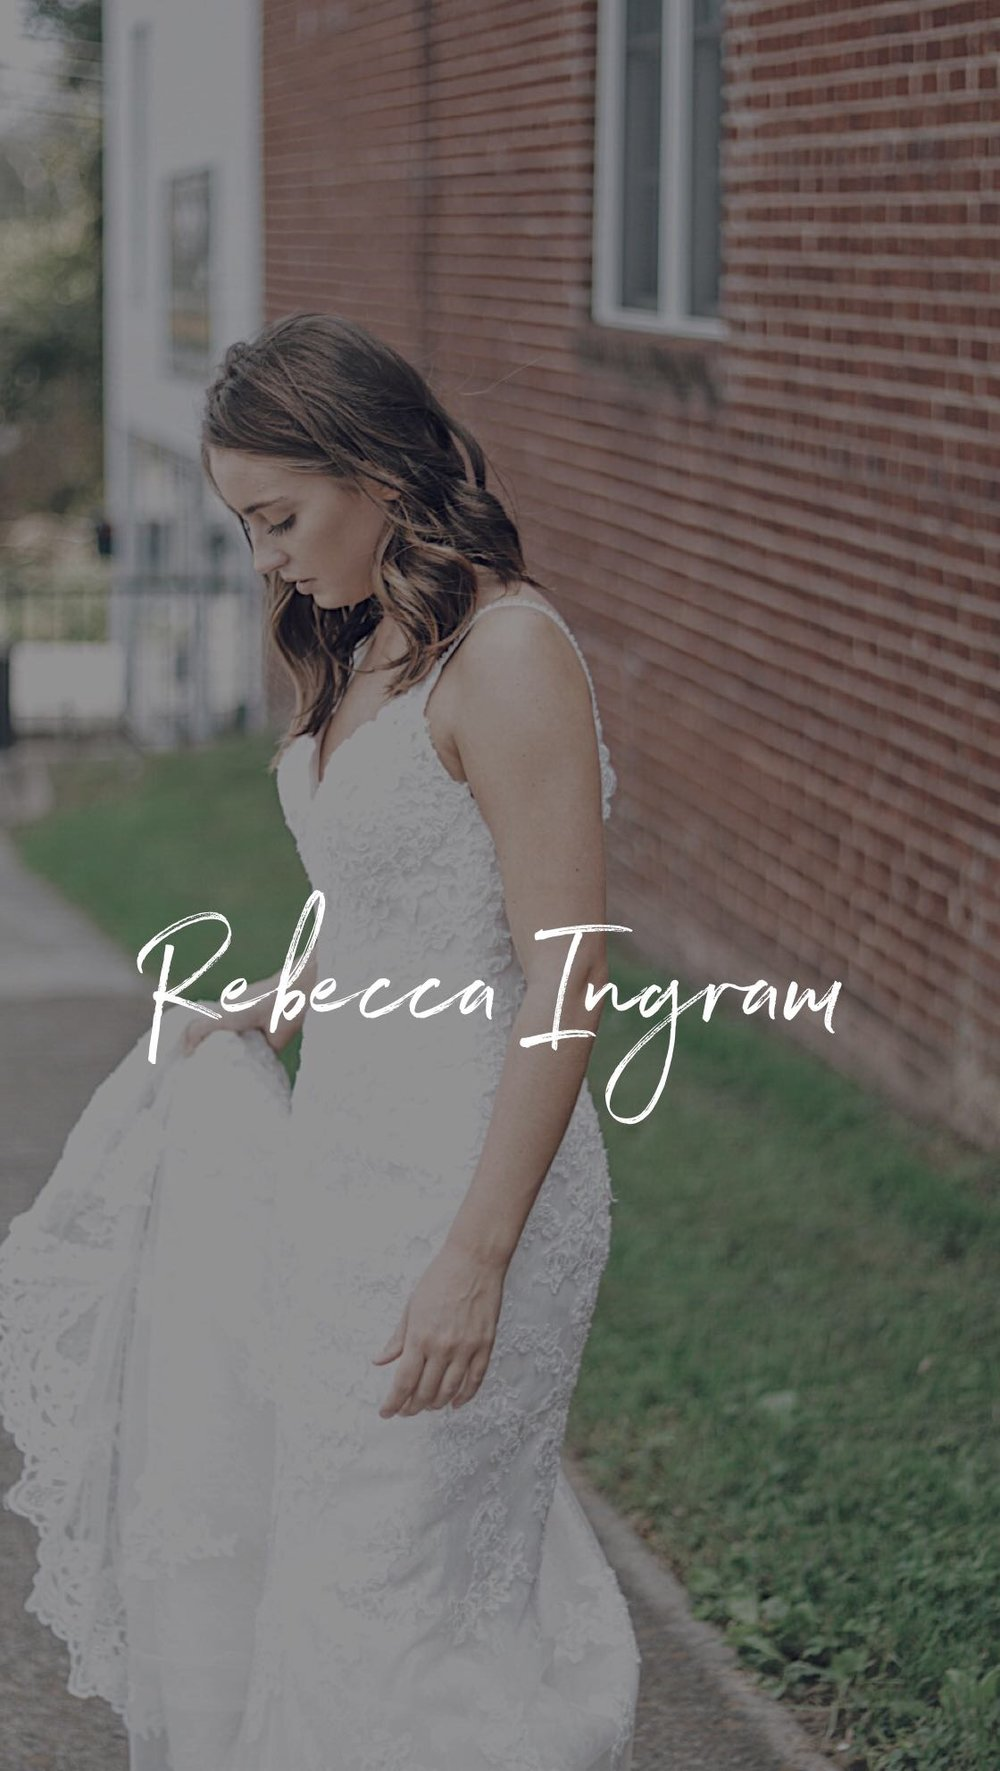 rebecca ingram website.JPG